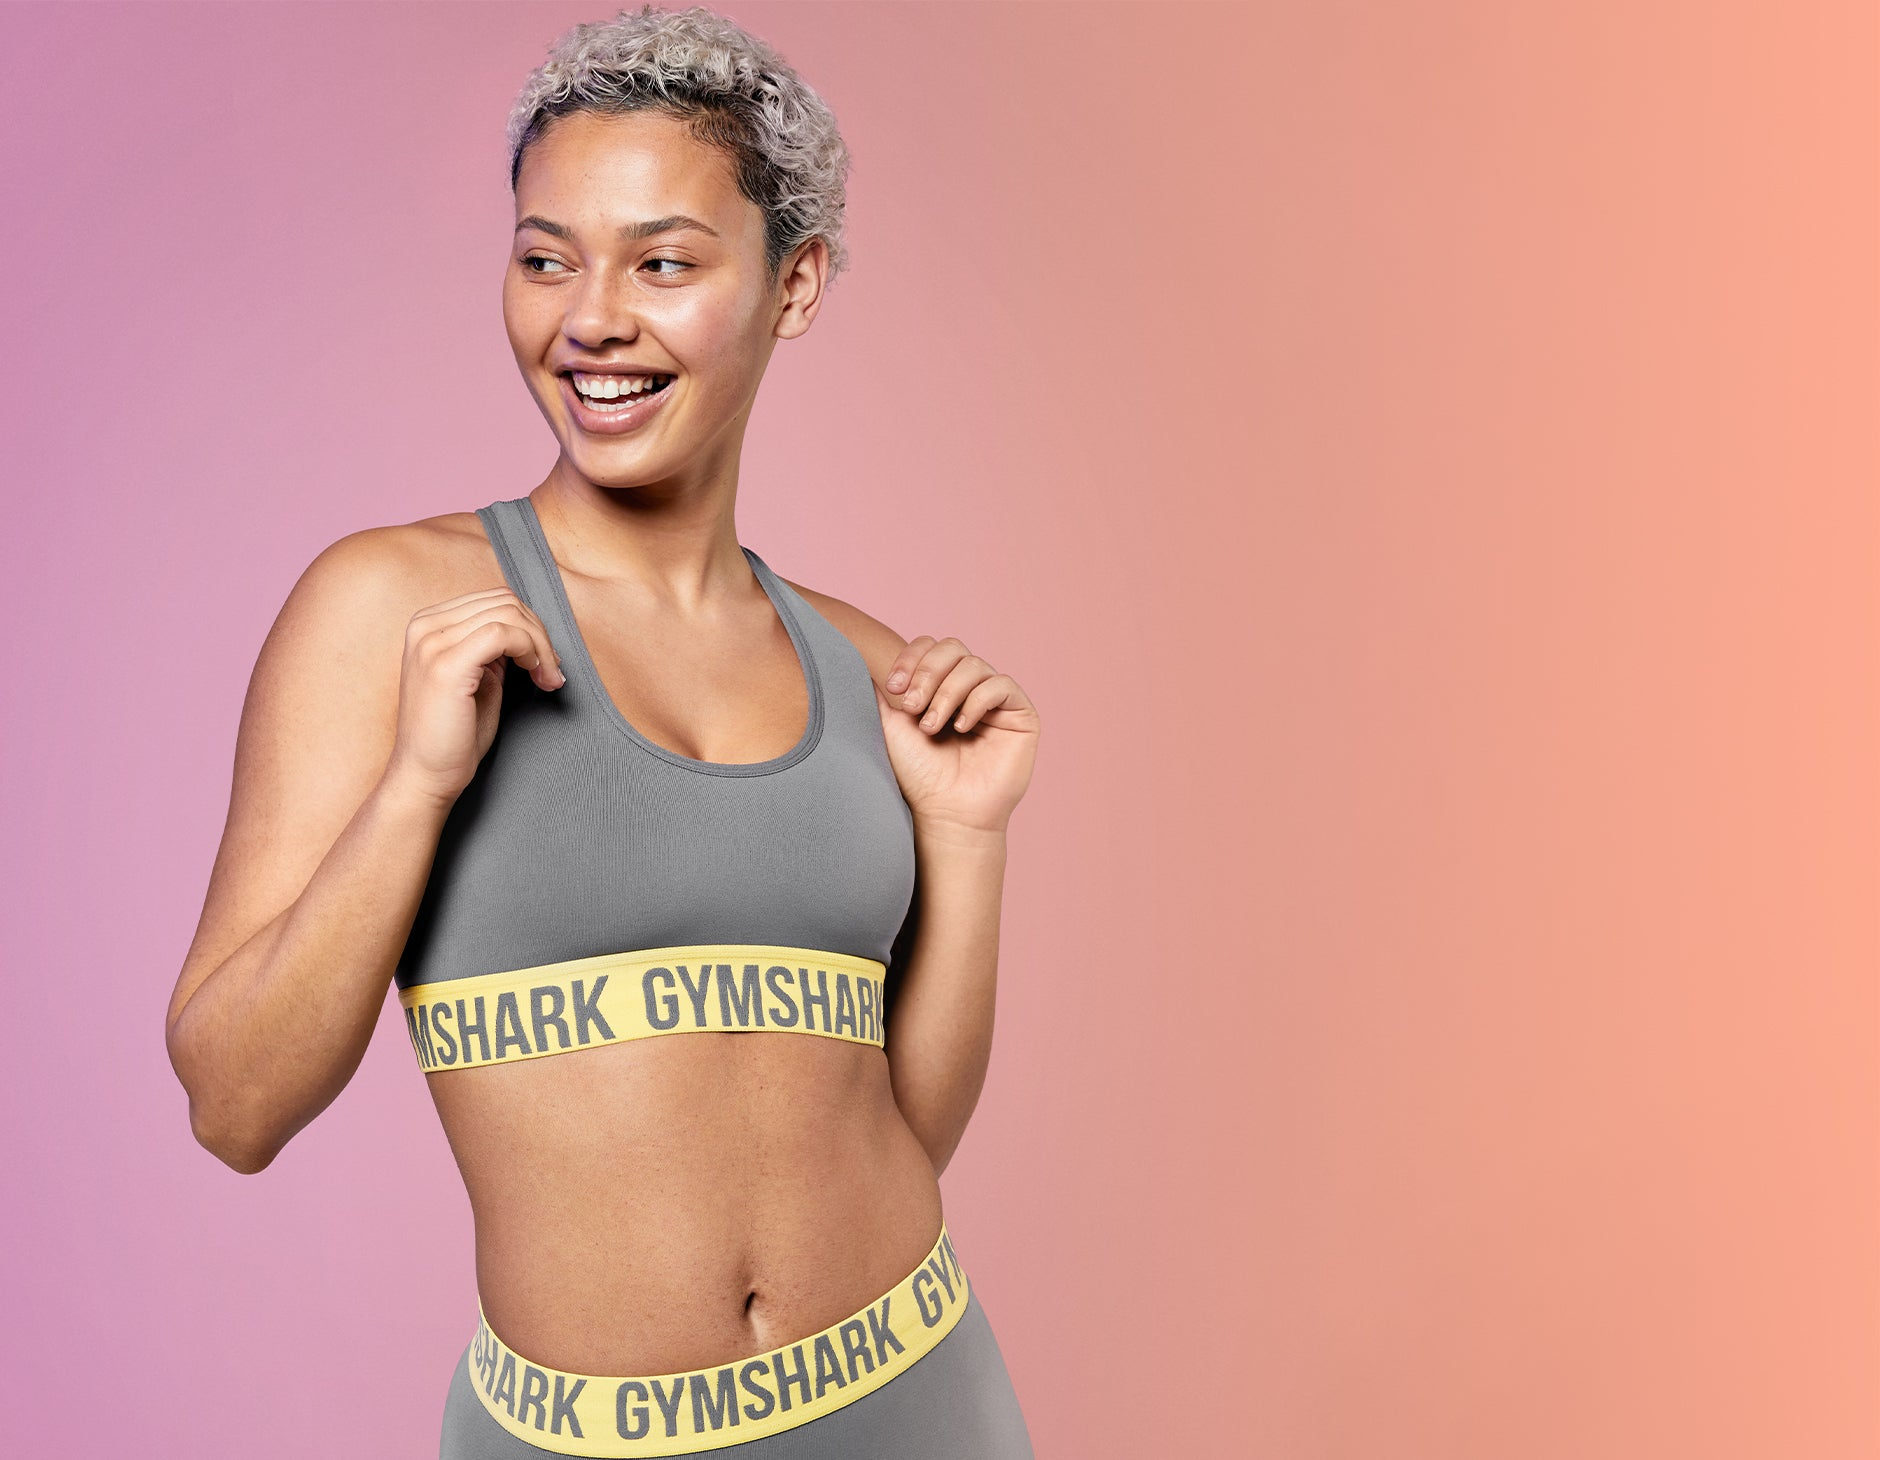 Weibliches Model trägt Fit Seamless Sports Bra und Shorts in Charcoal/Yellow.